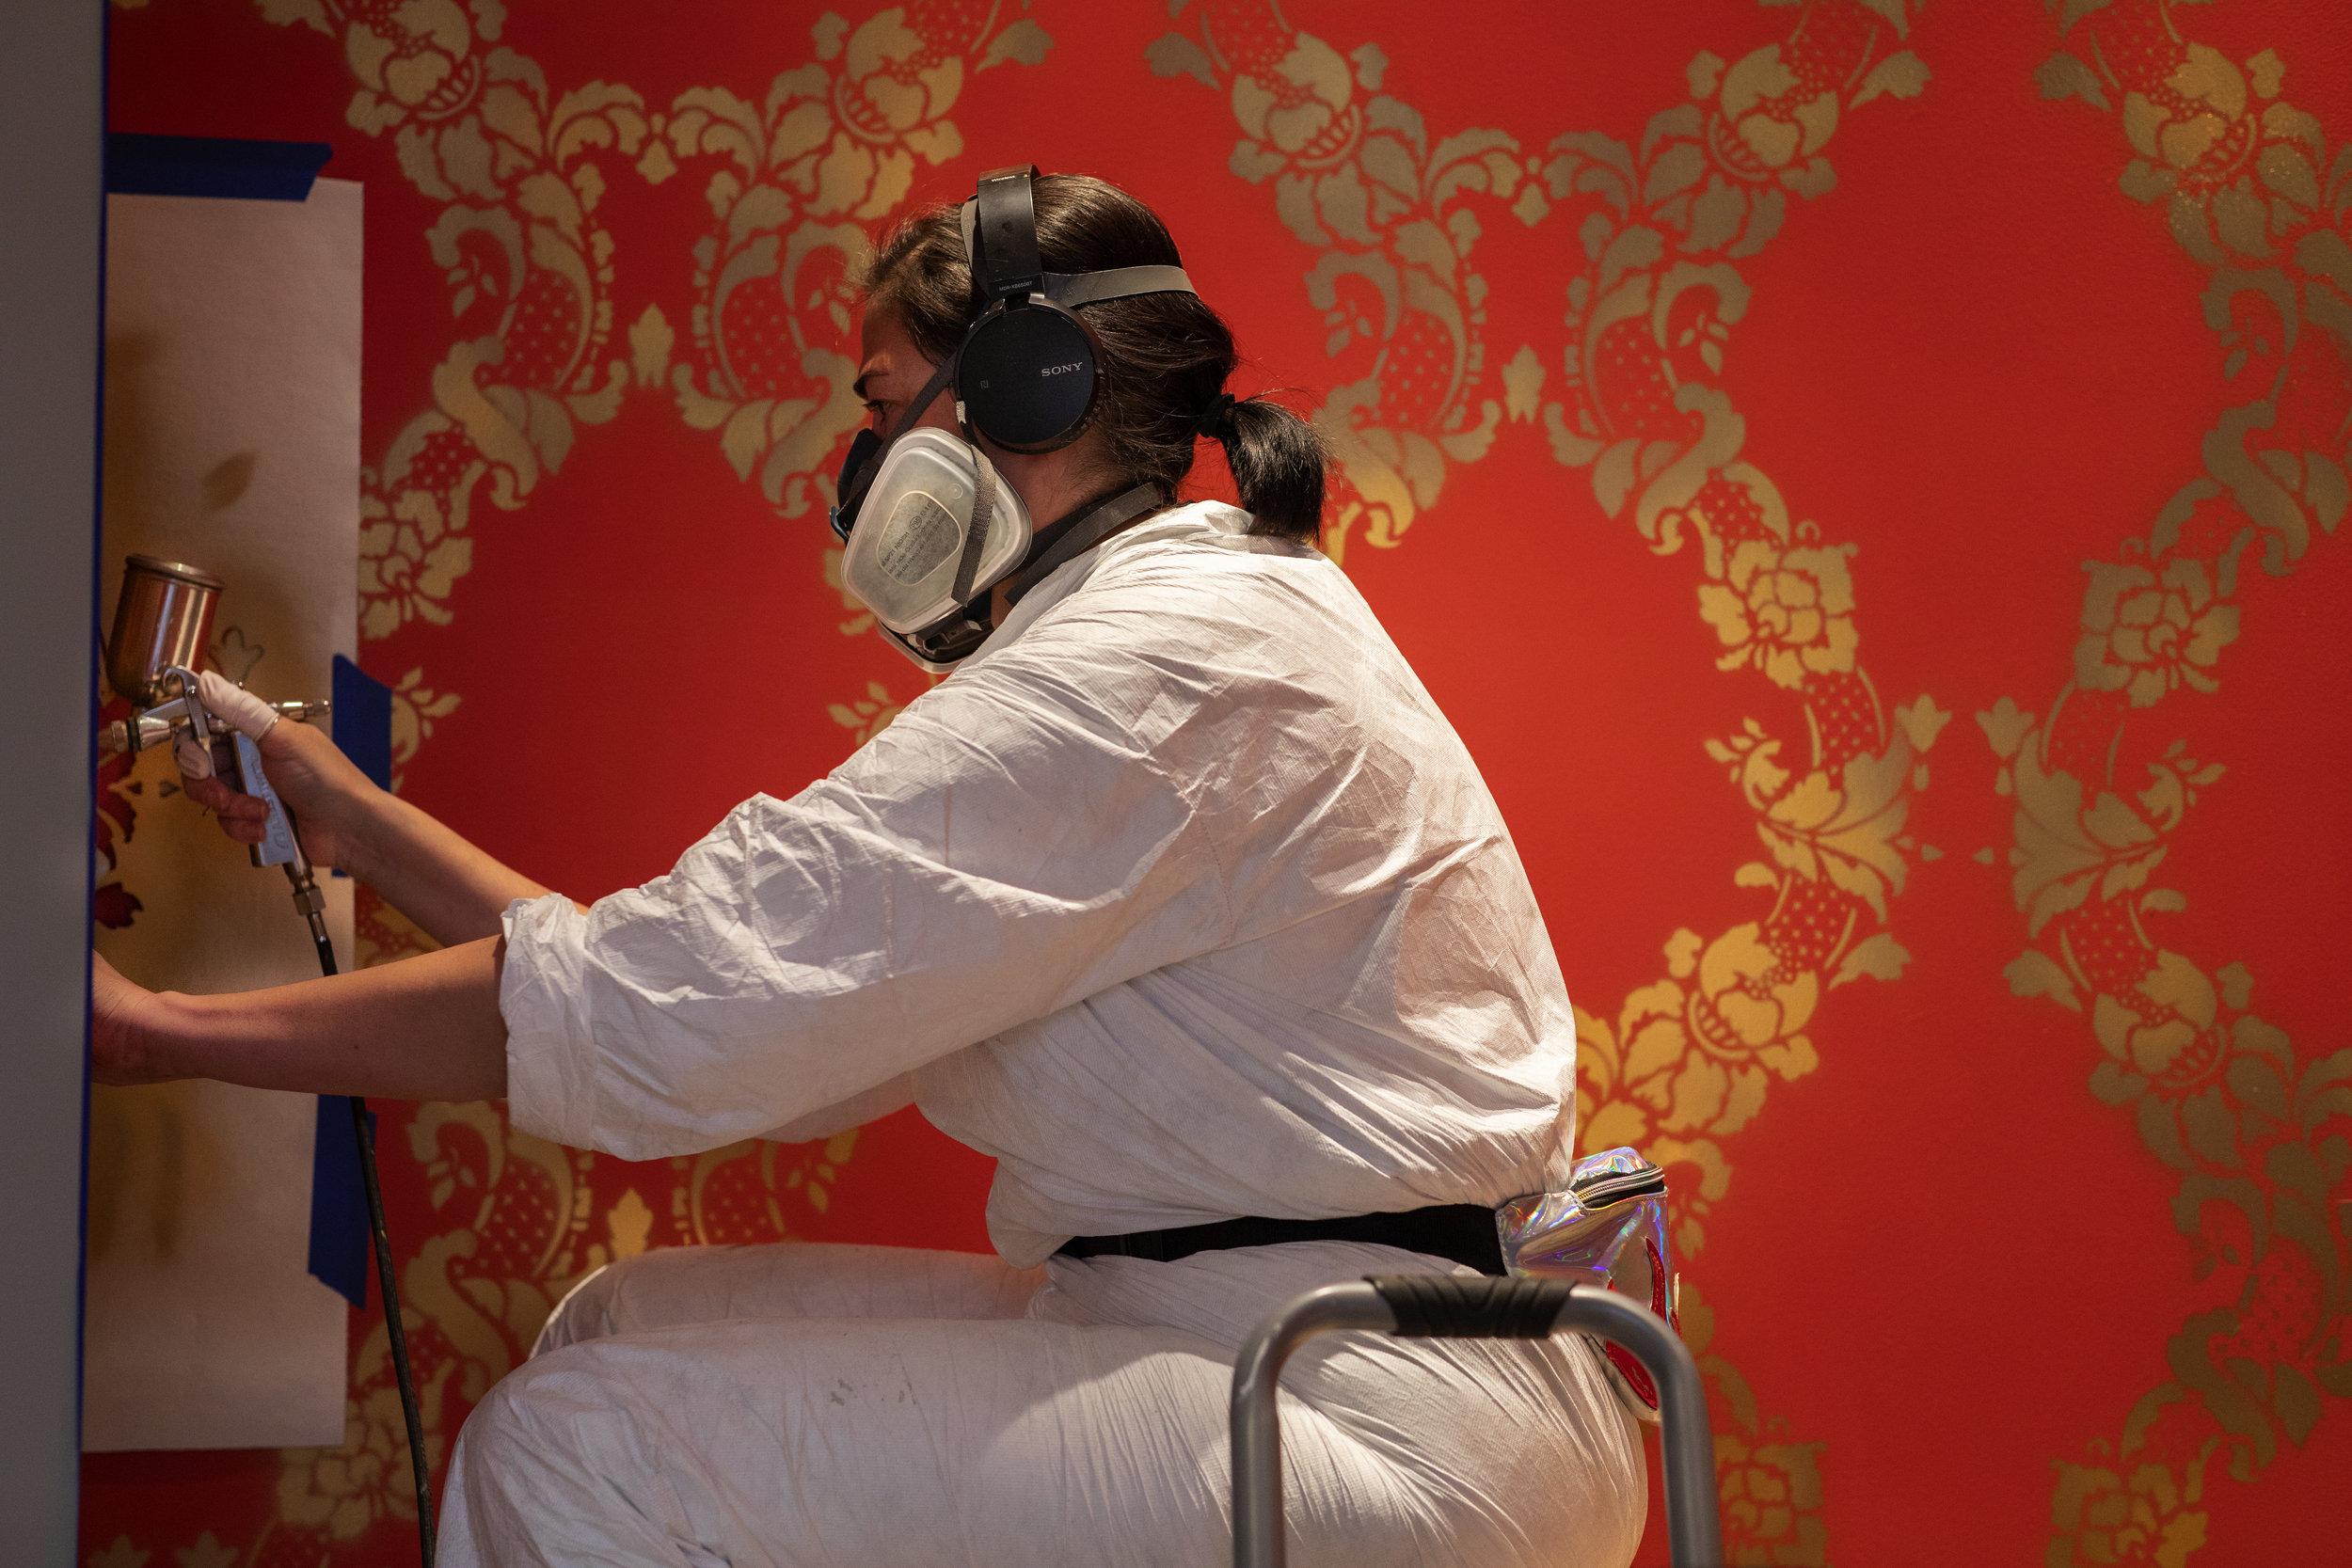 Stencils, spray paint, wall-to-wall - by Vanessa Platacis (Guest contributor for Peabody Essex Museum)